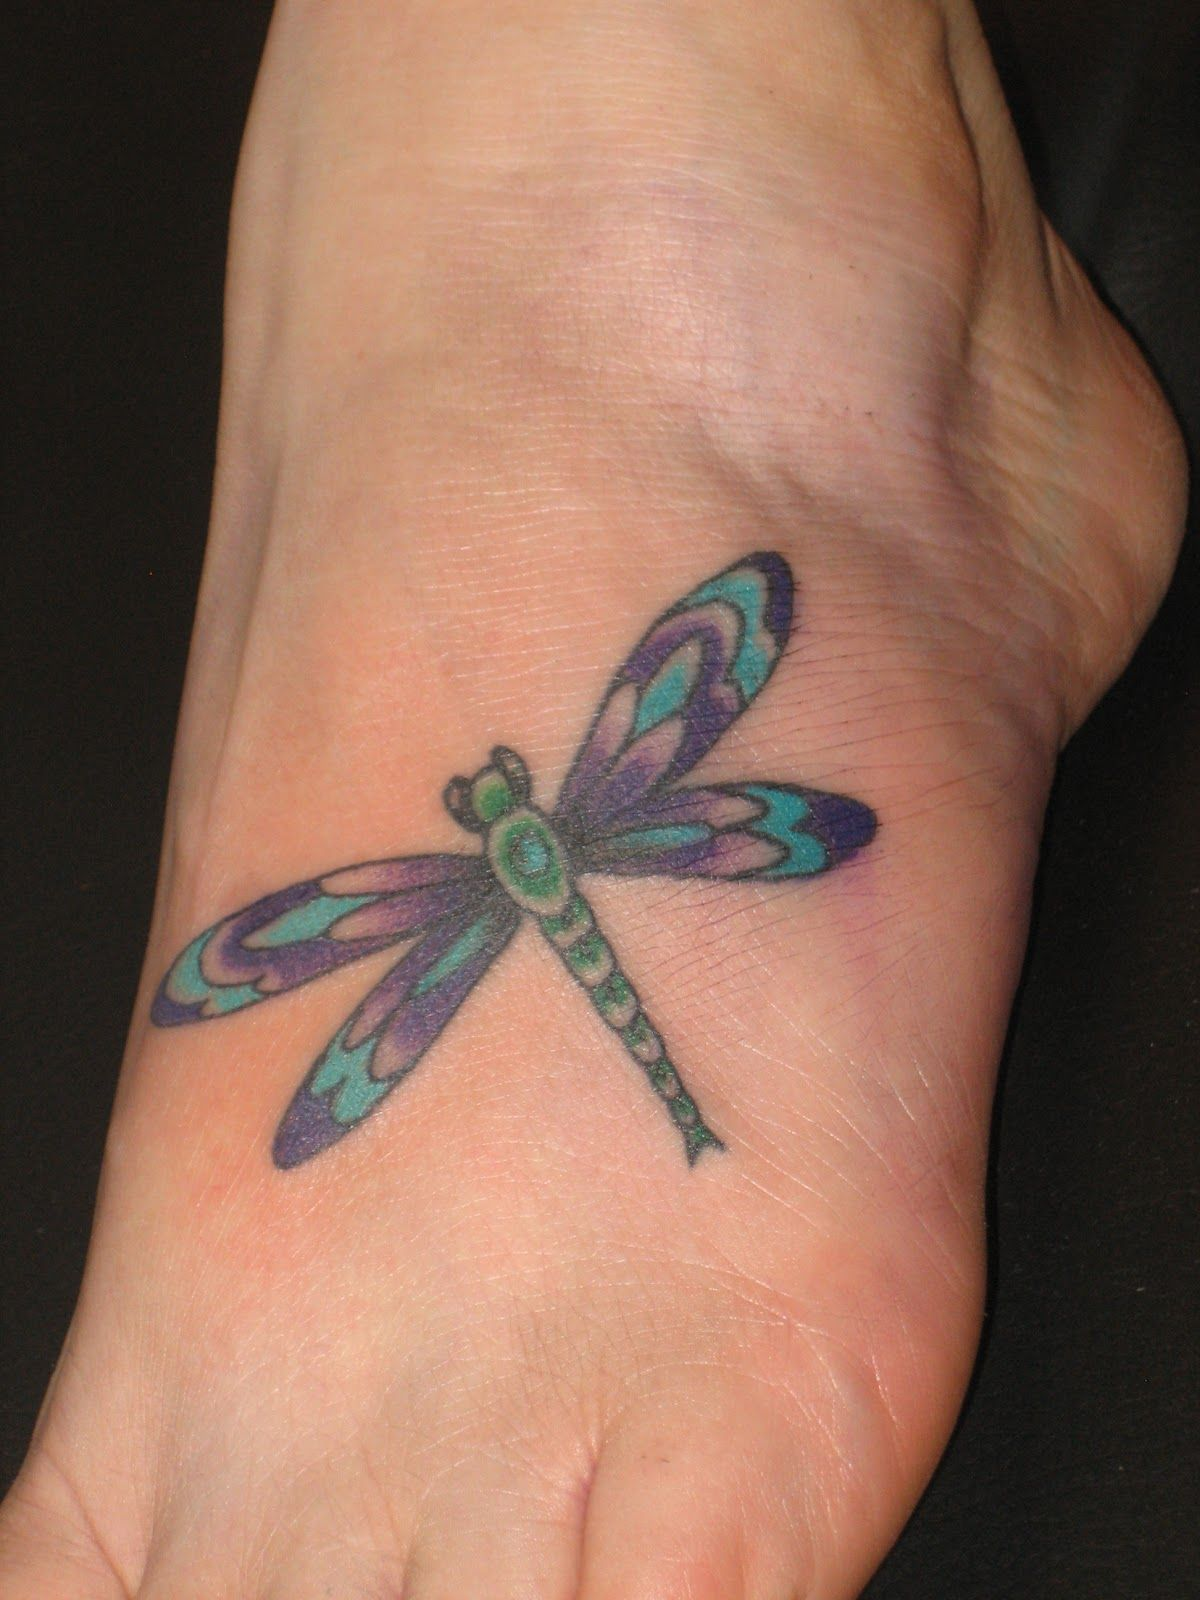 pincutedragonflytattoodesignsreplytattoosmarch25th